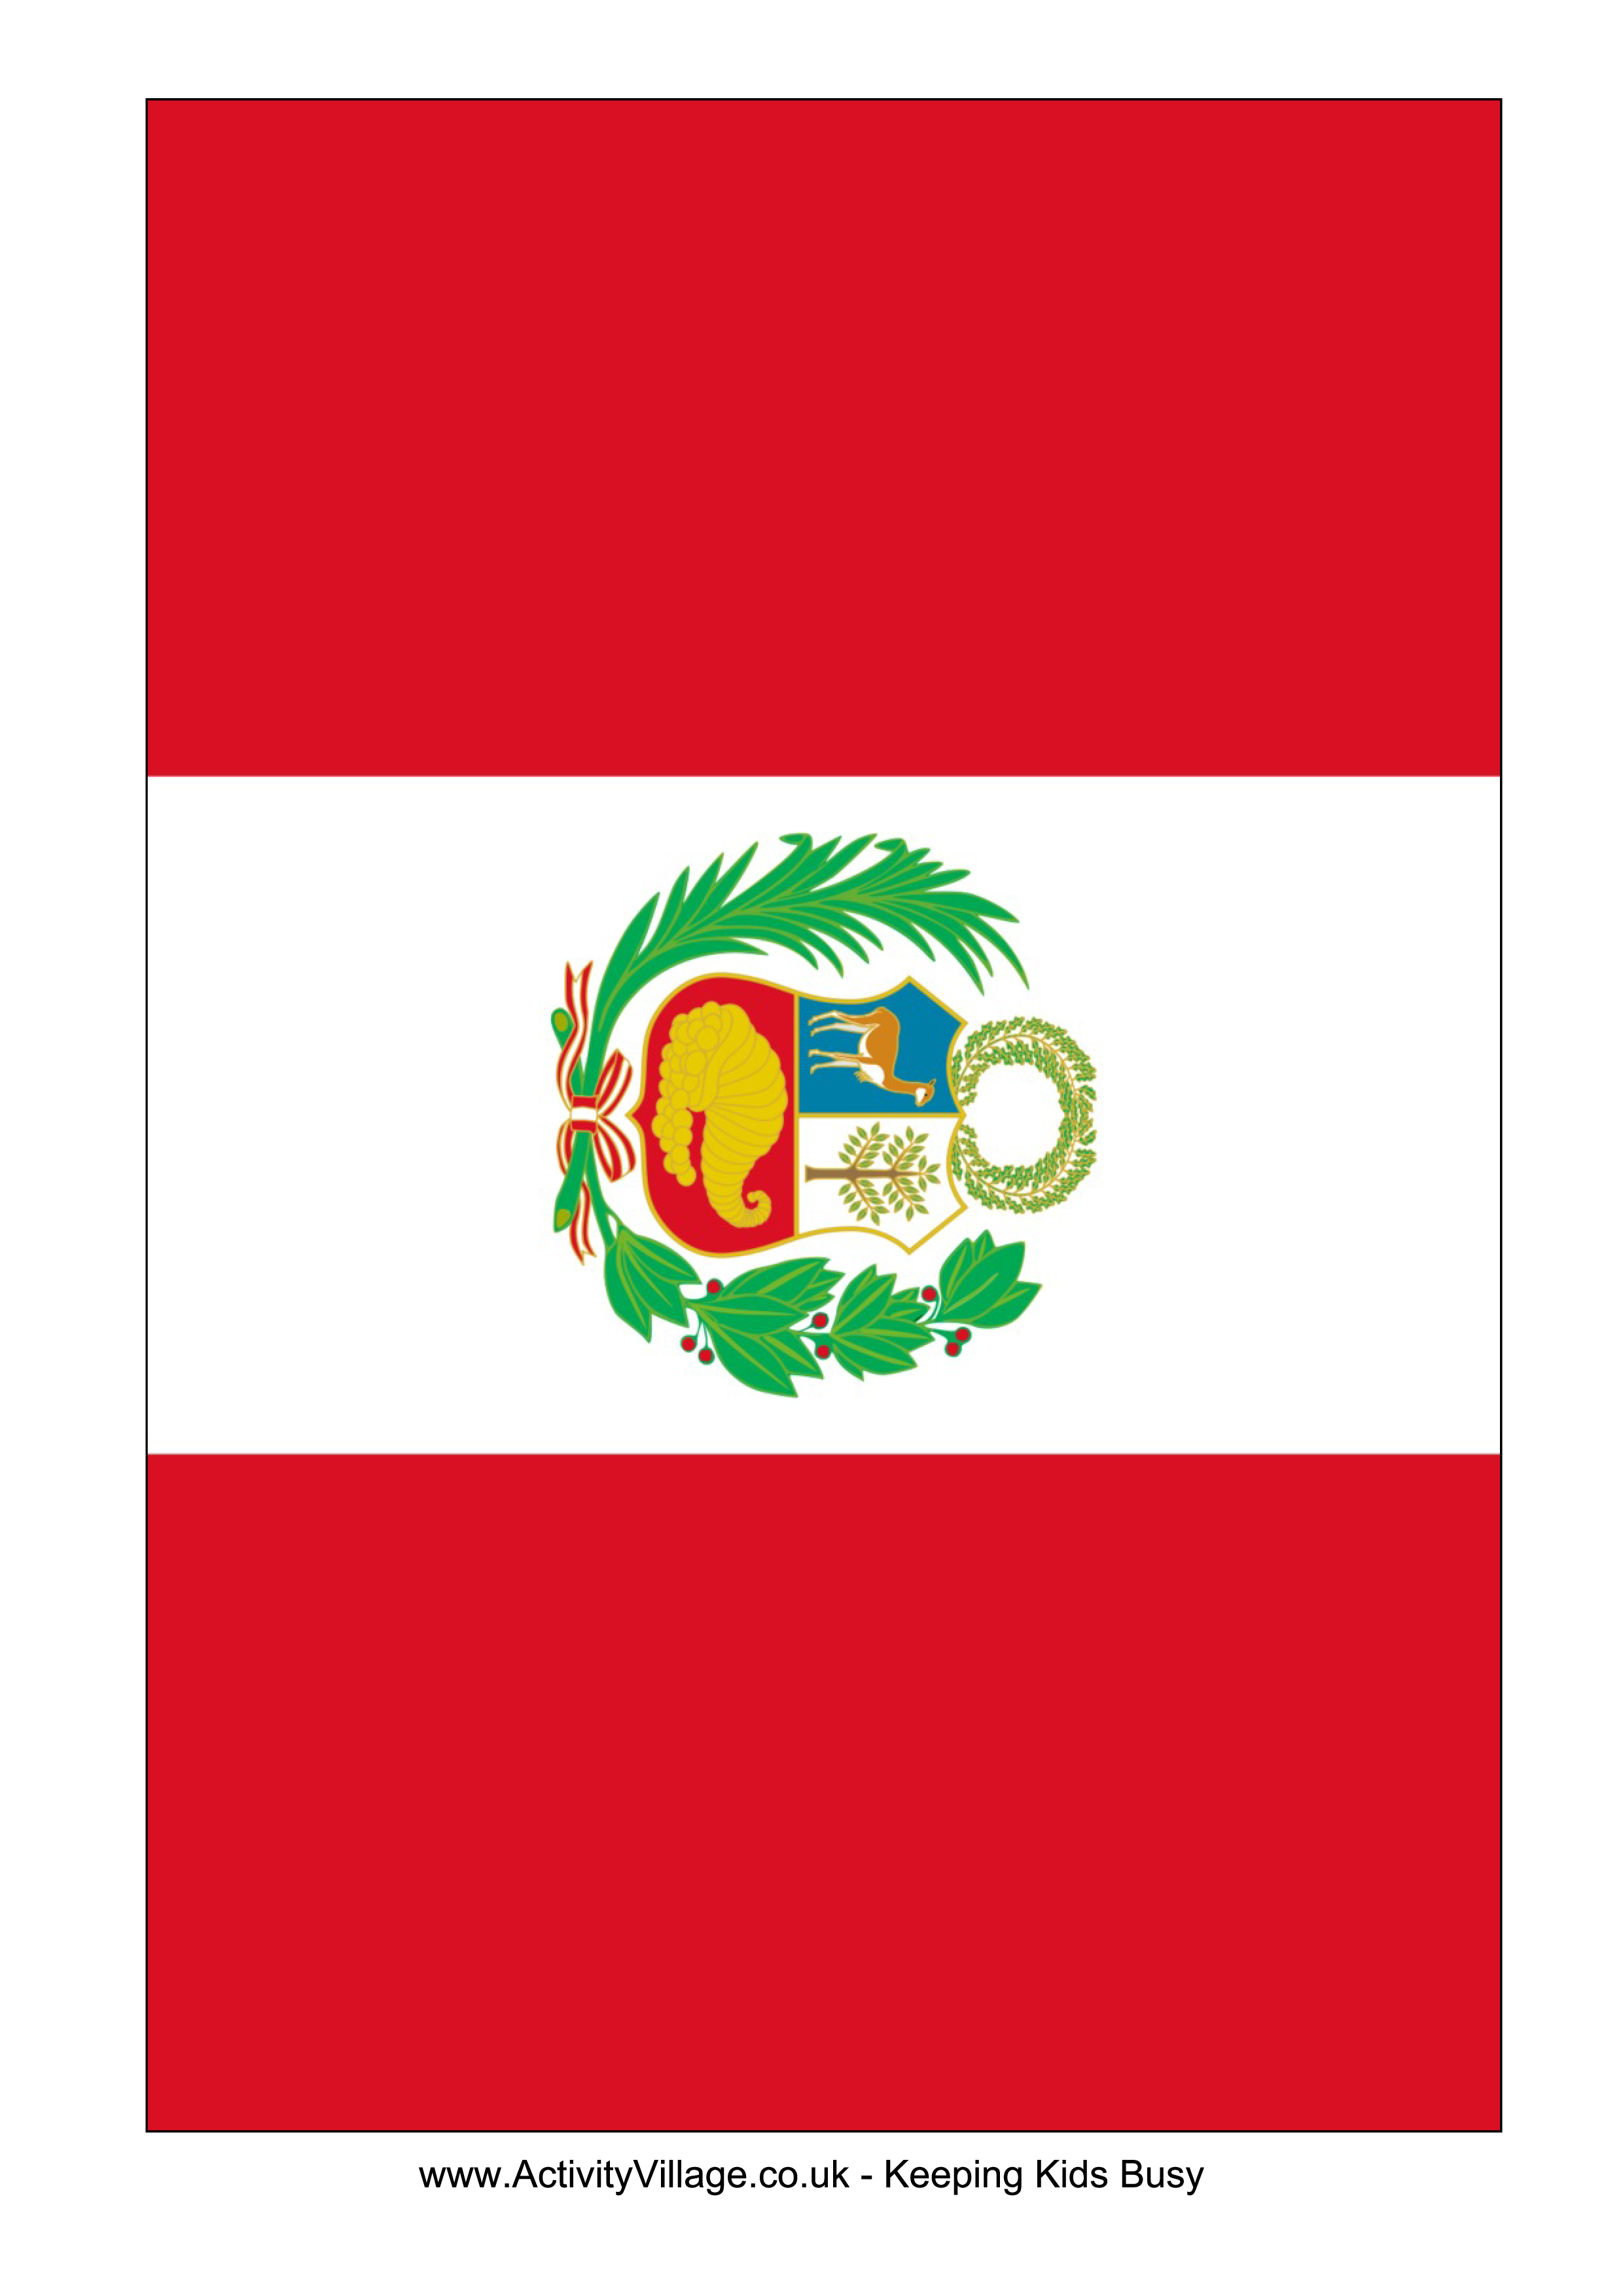 Peru Flag Download This Free Printable Peru Template A4 Flag A5 Flag 8 And 21 Flags On One A4page Easy To Use In Yo Flag Printable Peru Flag Flag Template